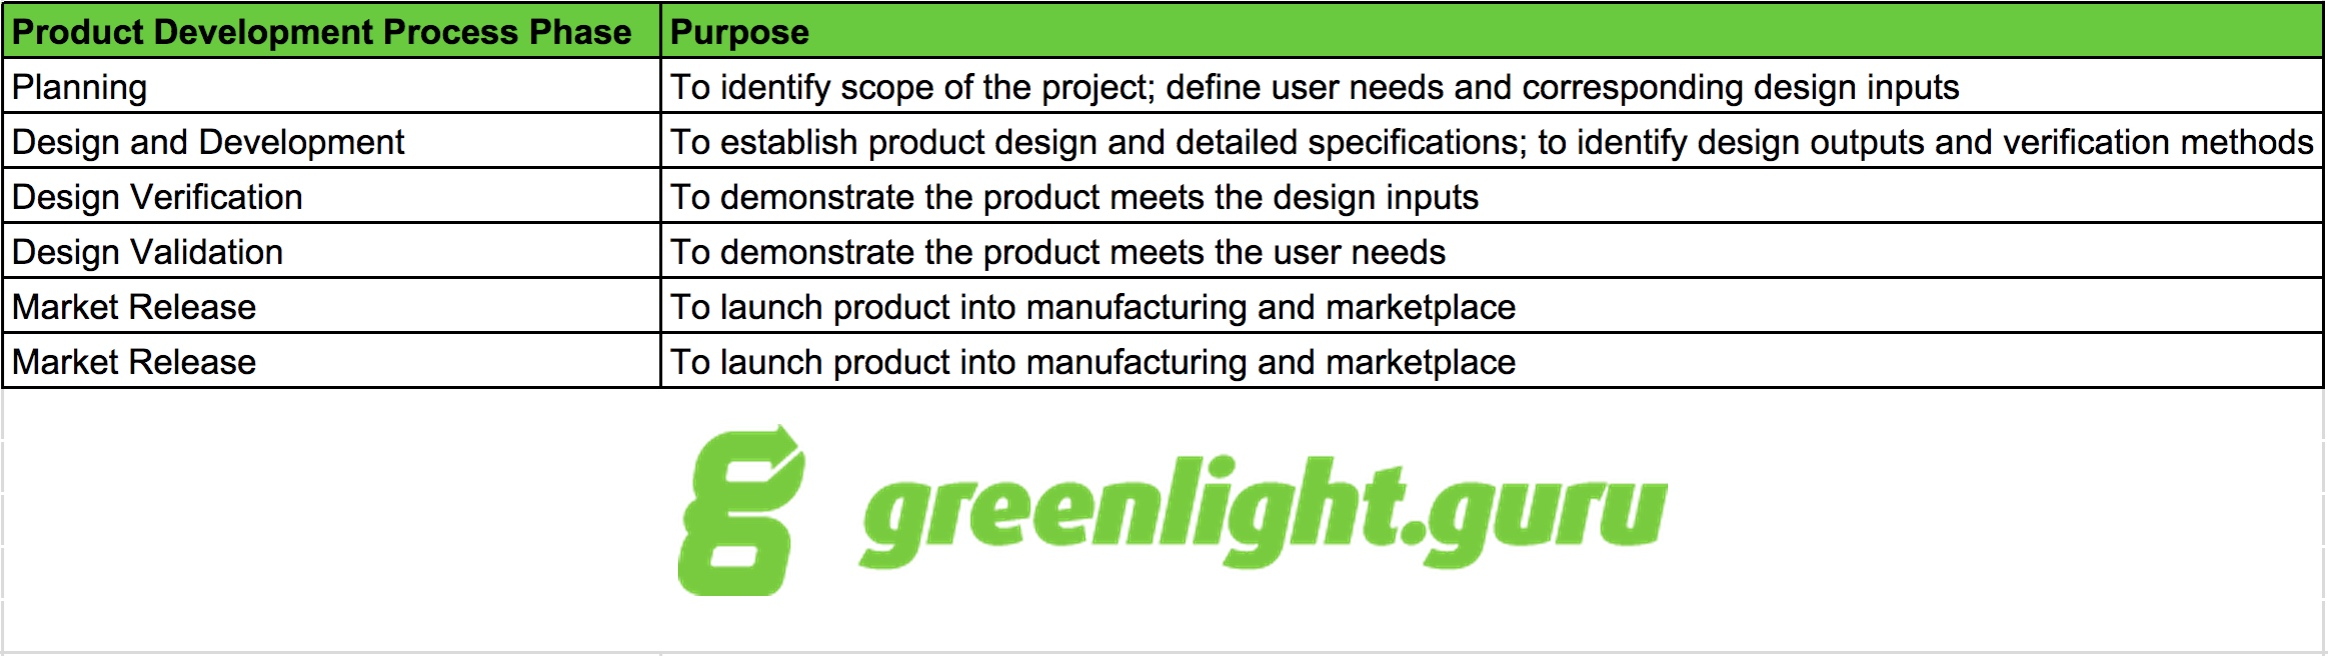 medical device product development process - greenlight.guru